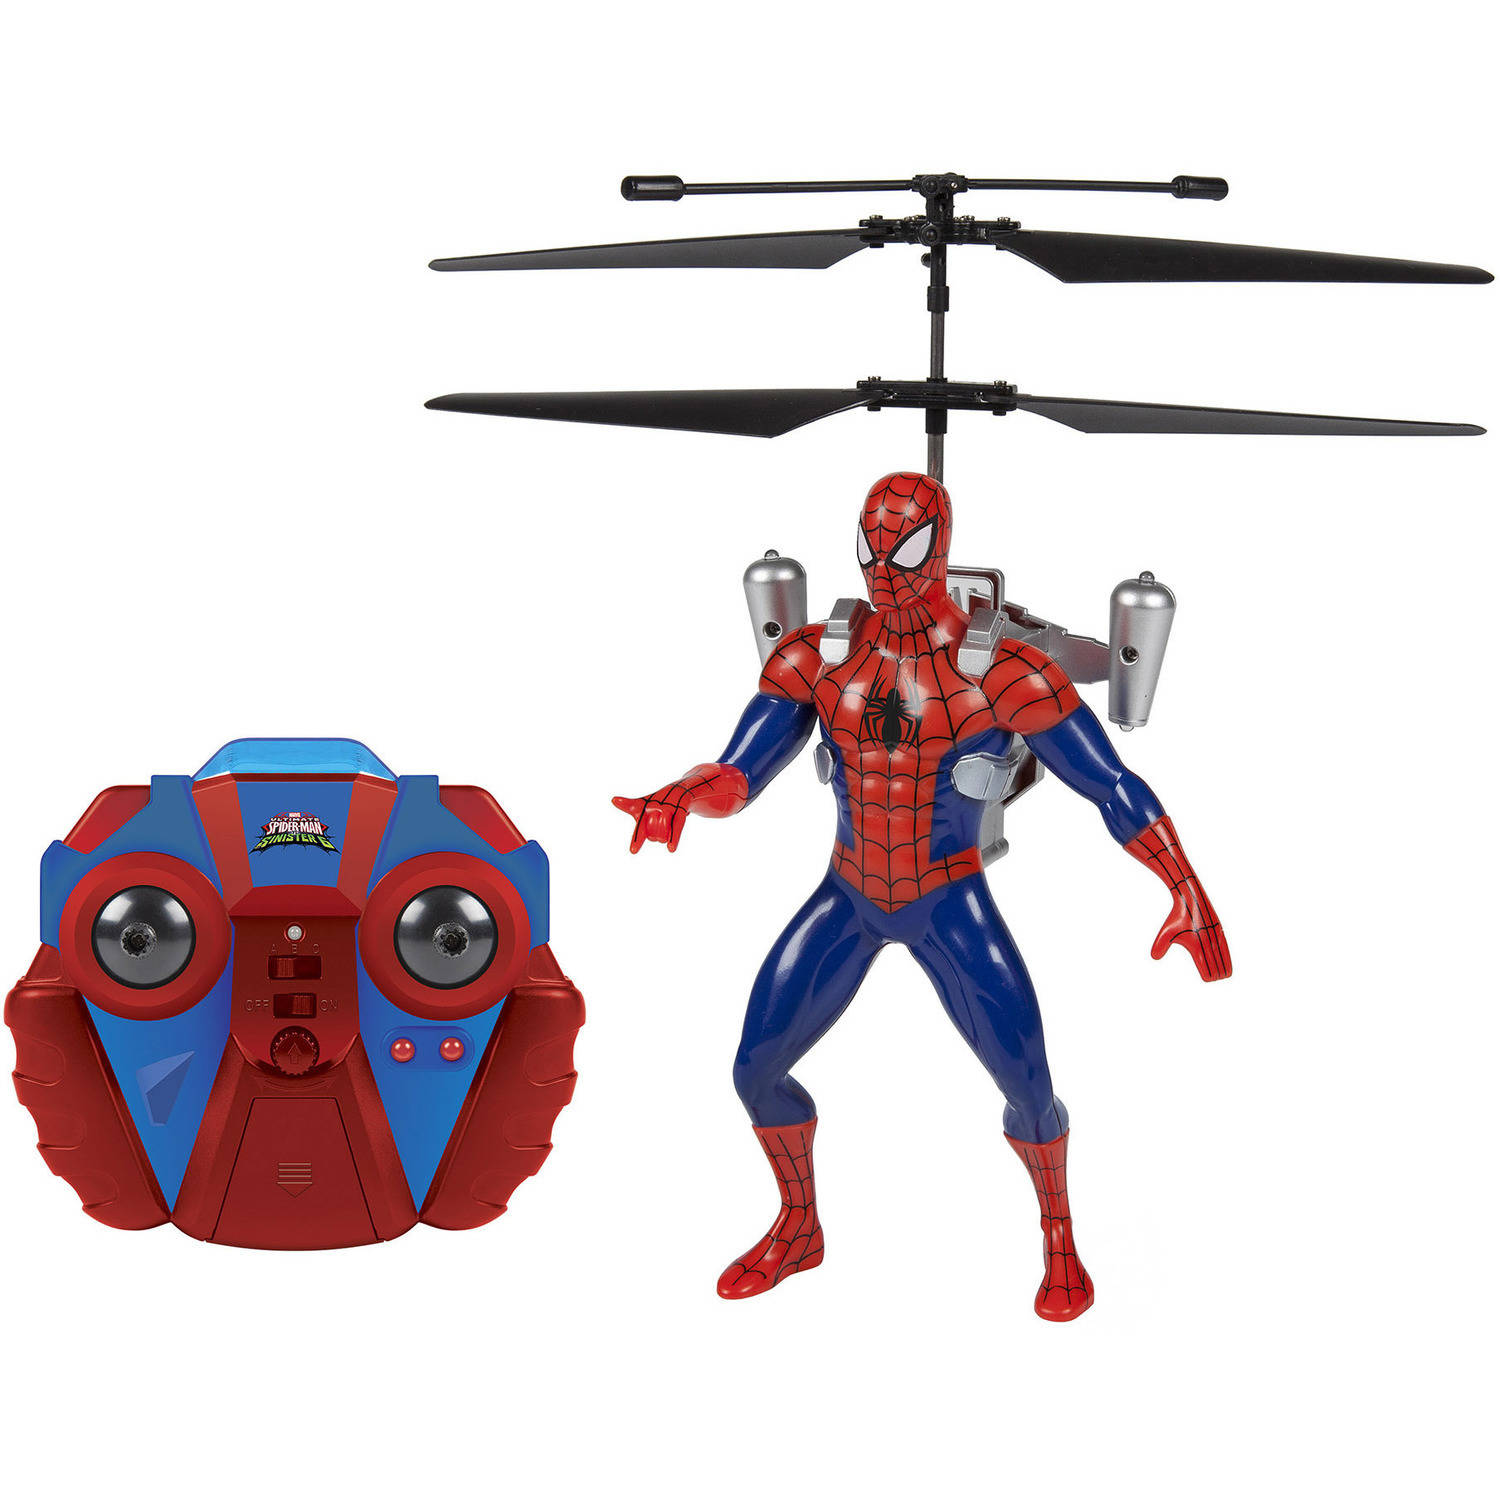 Marvel Ultimate Spider-Man Vs The Sinister 6 Jetpack 2-Channel IR RC Helicopter